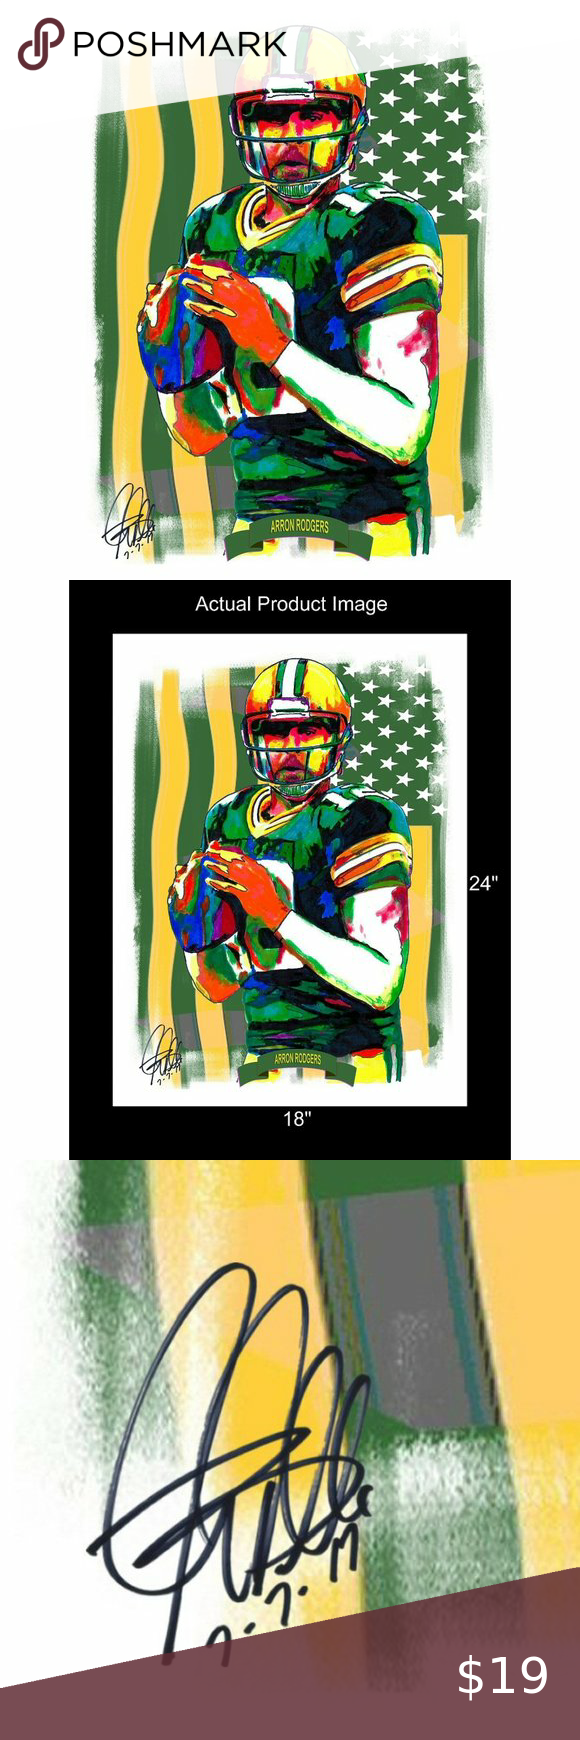 Aaron Rodgers Green Bay Packers Poster Print 18x24 Aaron Rodgers ĺ Poster From Original Ink Drawing O In 2020 Original Ink Drawing Poster Prints Original Ink